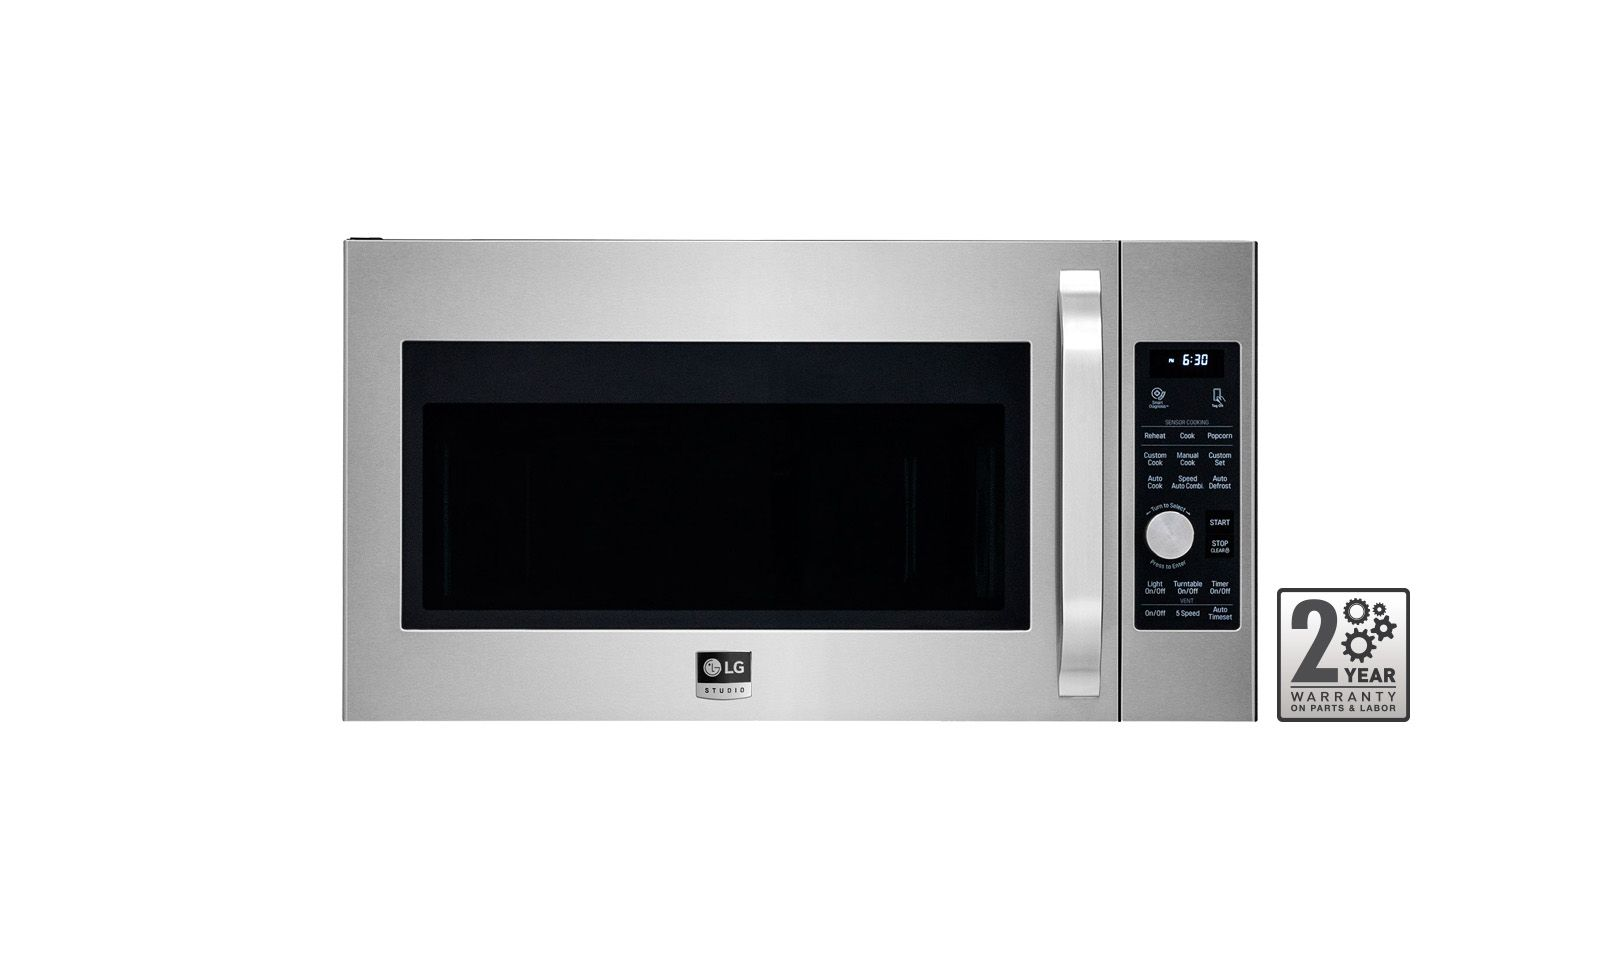 Lg Studio 1 7cuft Over The Range Microwave Oven In Stainless Steel